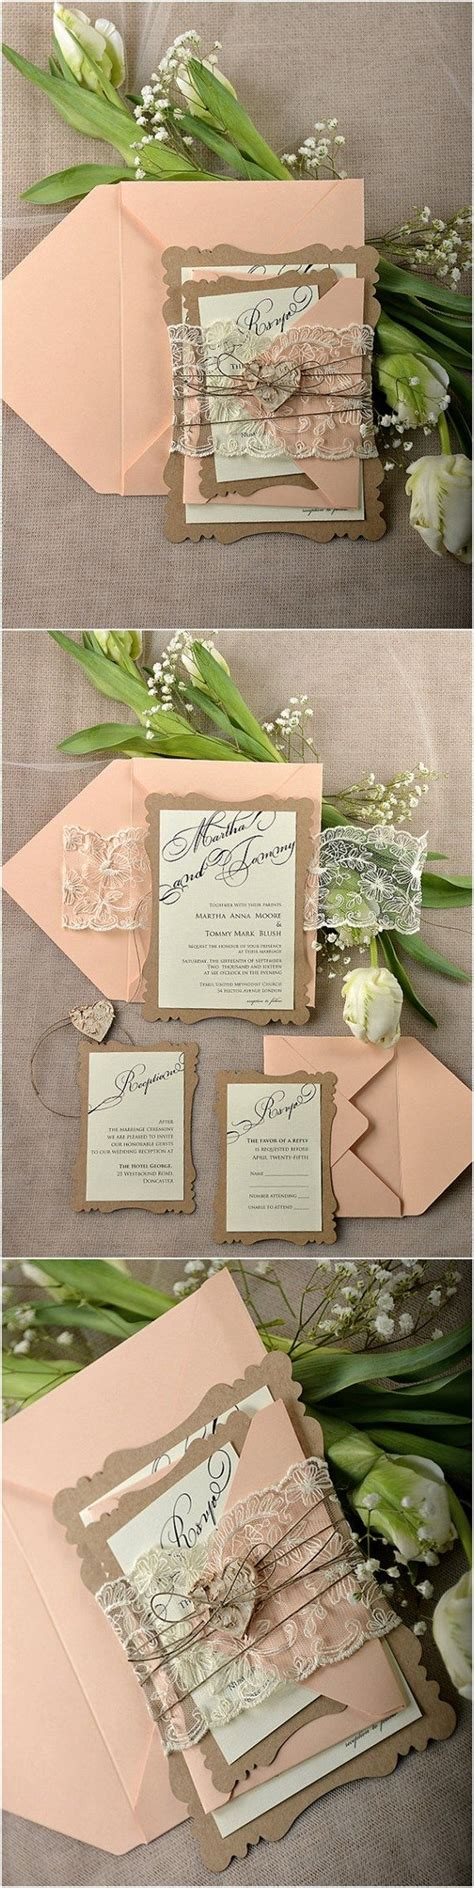 Diy Vintage Wedding Invitation Kits